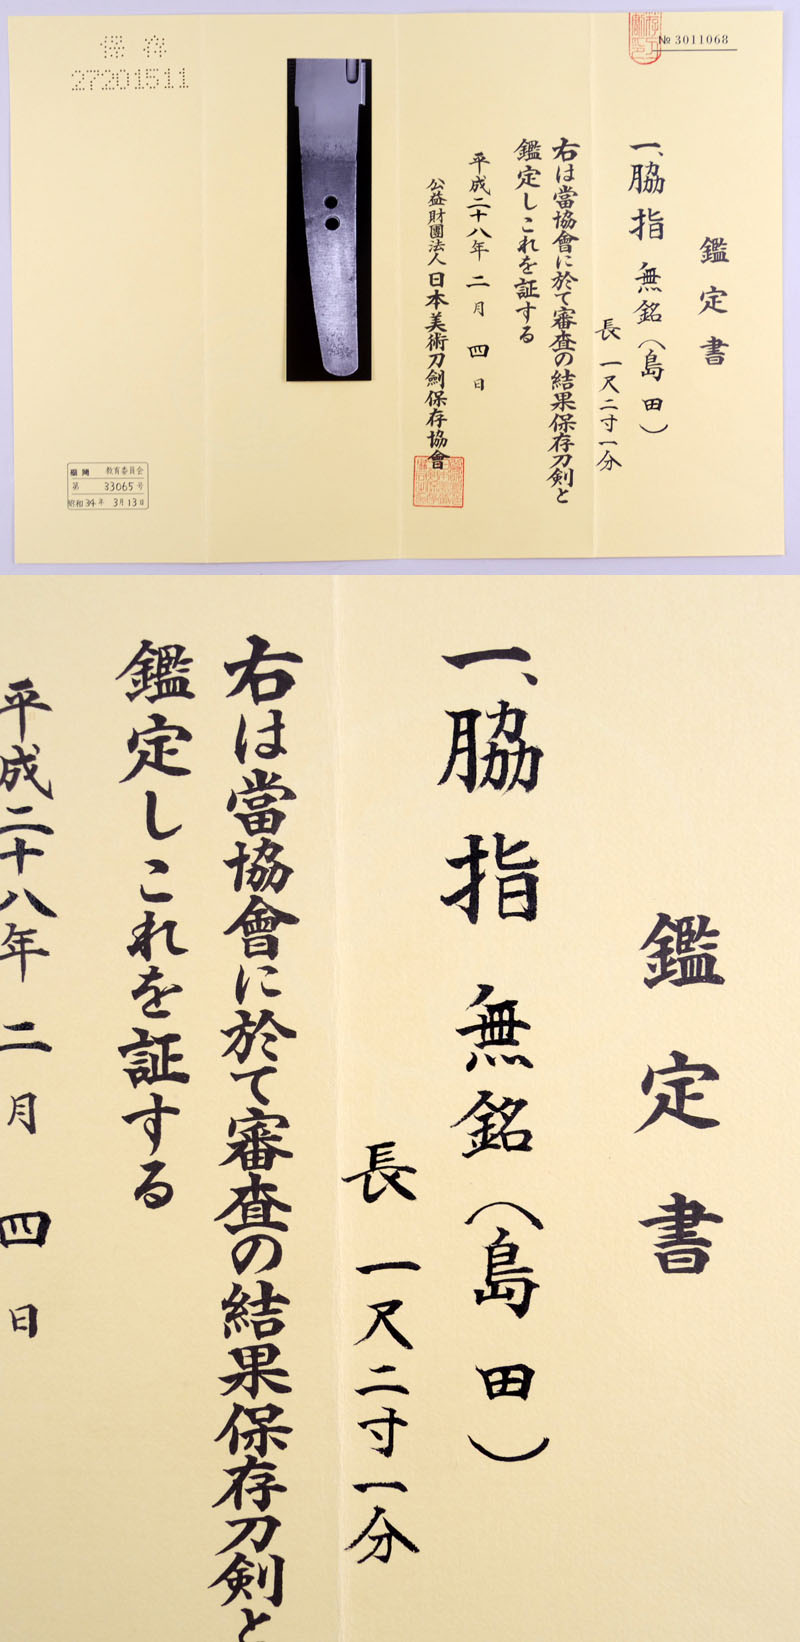 無銘(島田) Picture of Certificate